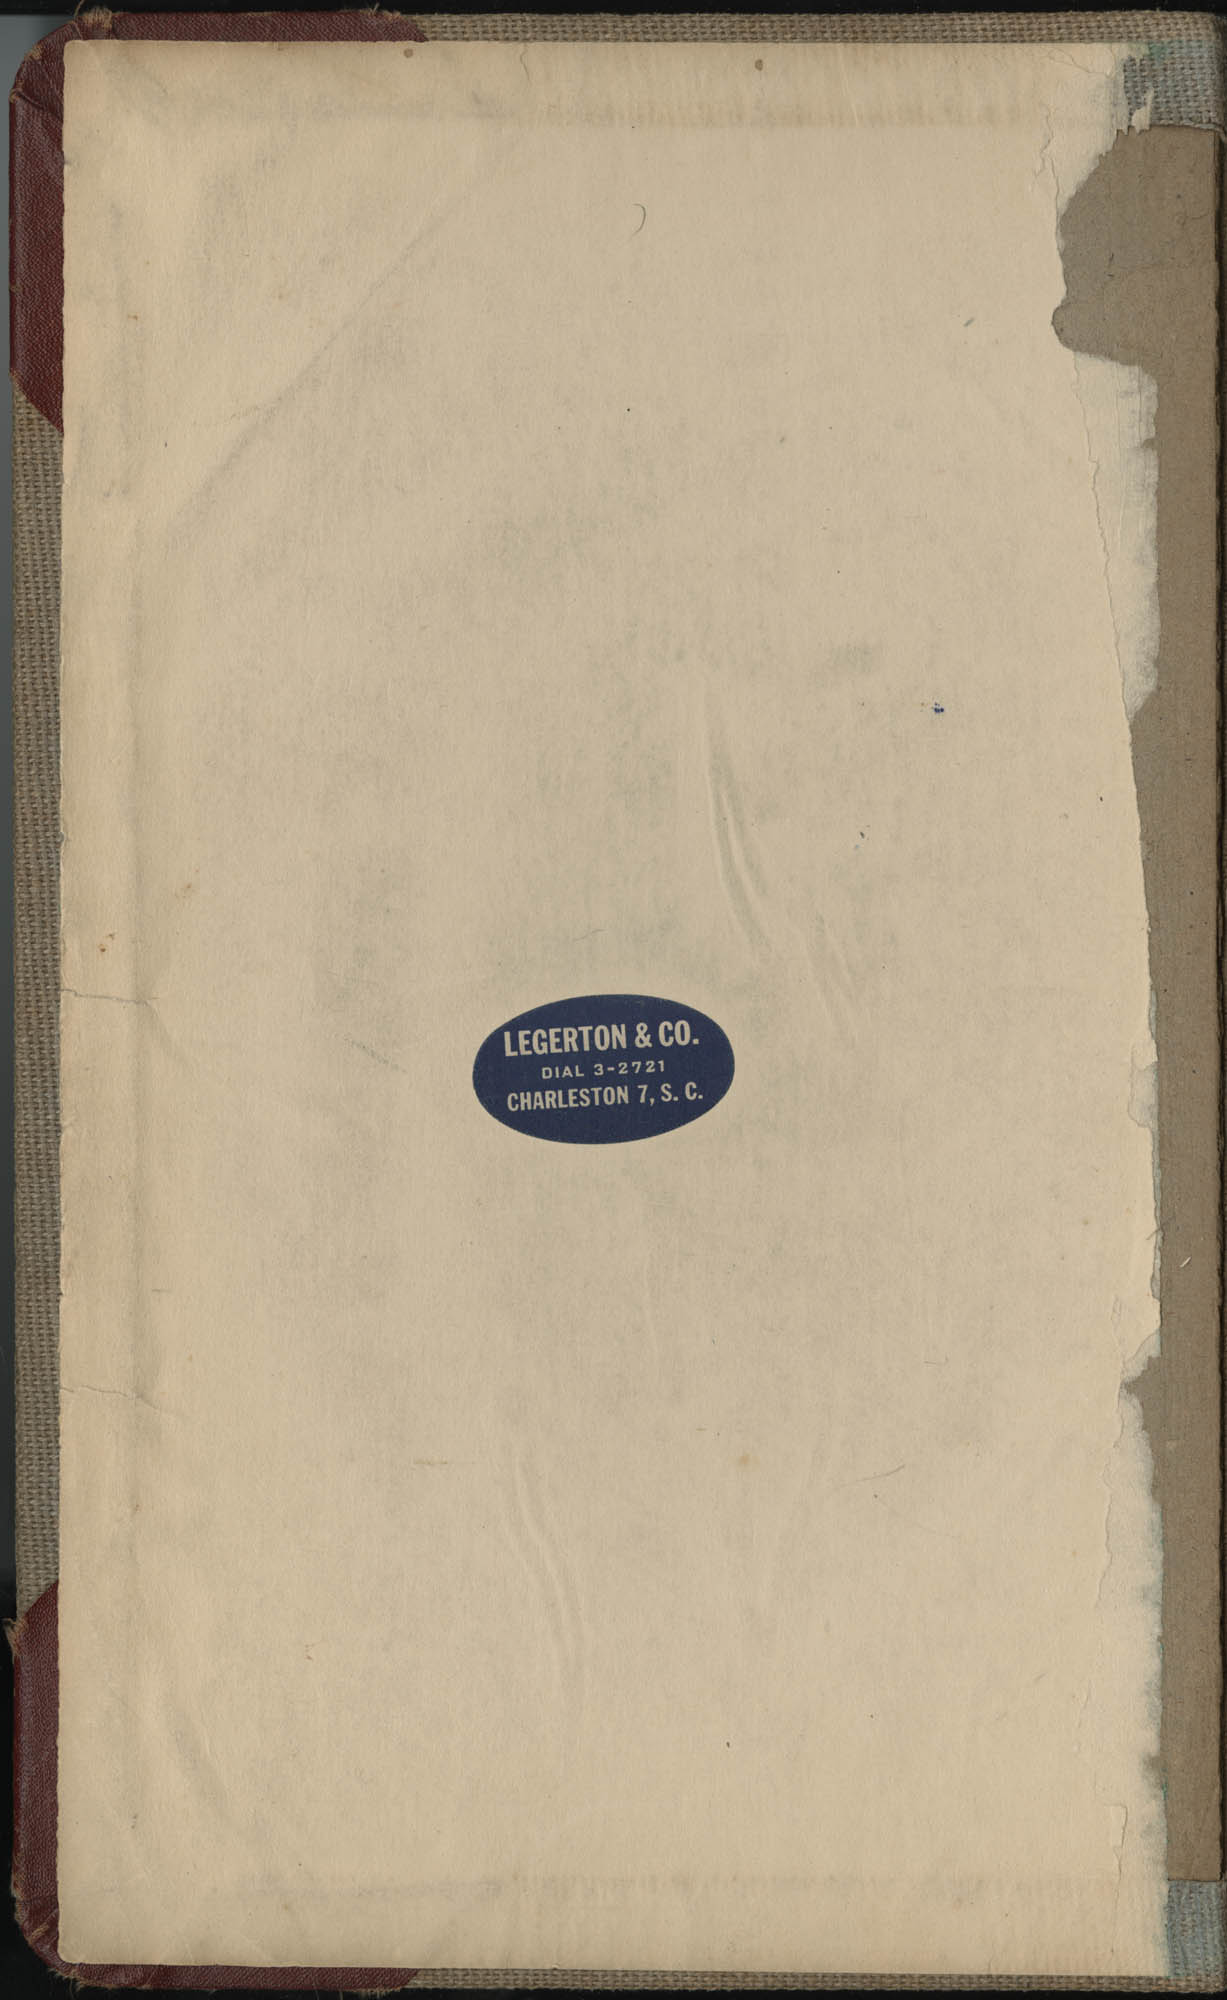 Minutes, Book Lovers' Club, 1944-1958, Front Cover Interior